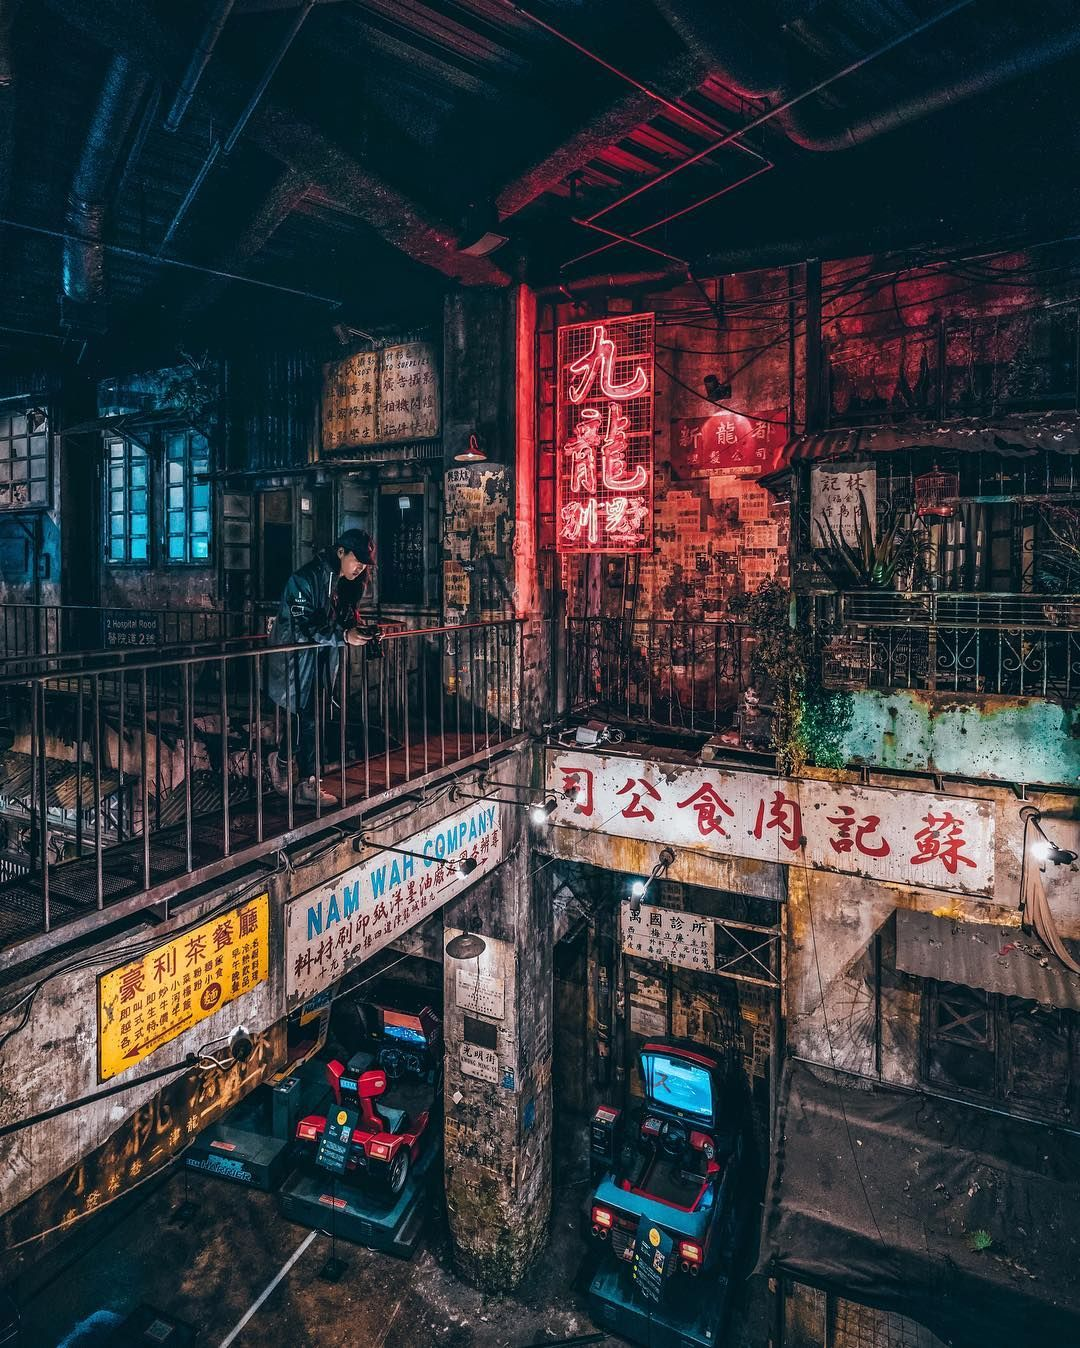 6 236 likes 117 comments cyc youknowcyc on instagram lost in translation japanese streets photos of the week stock photos